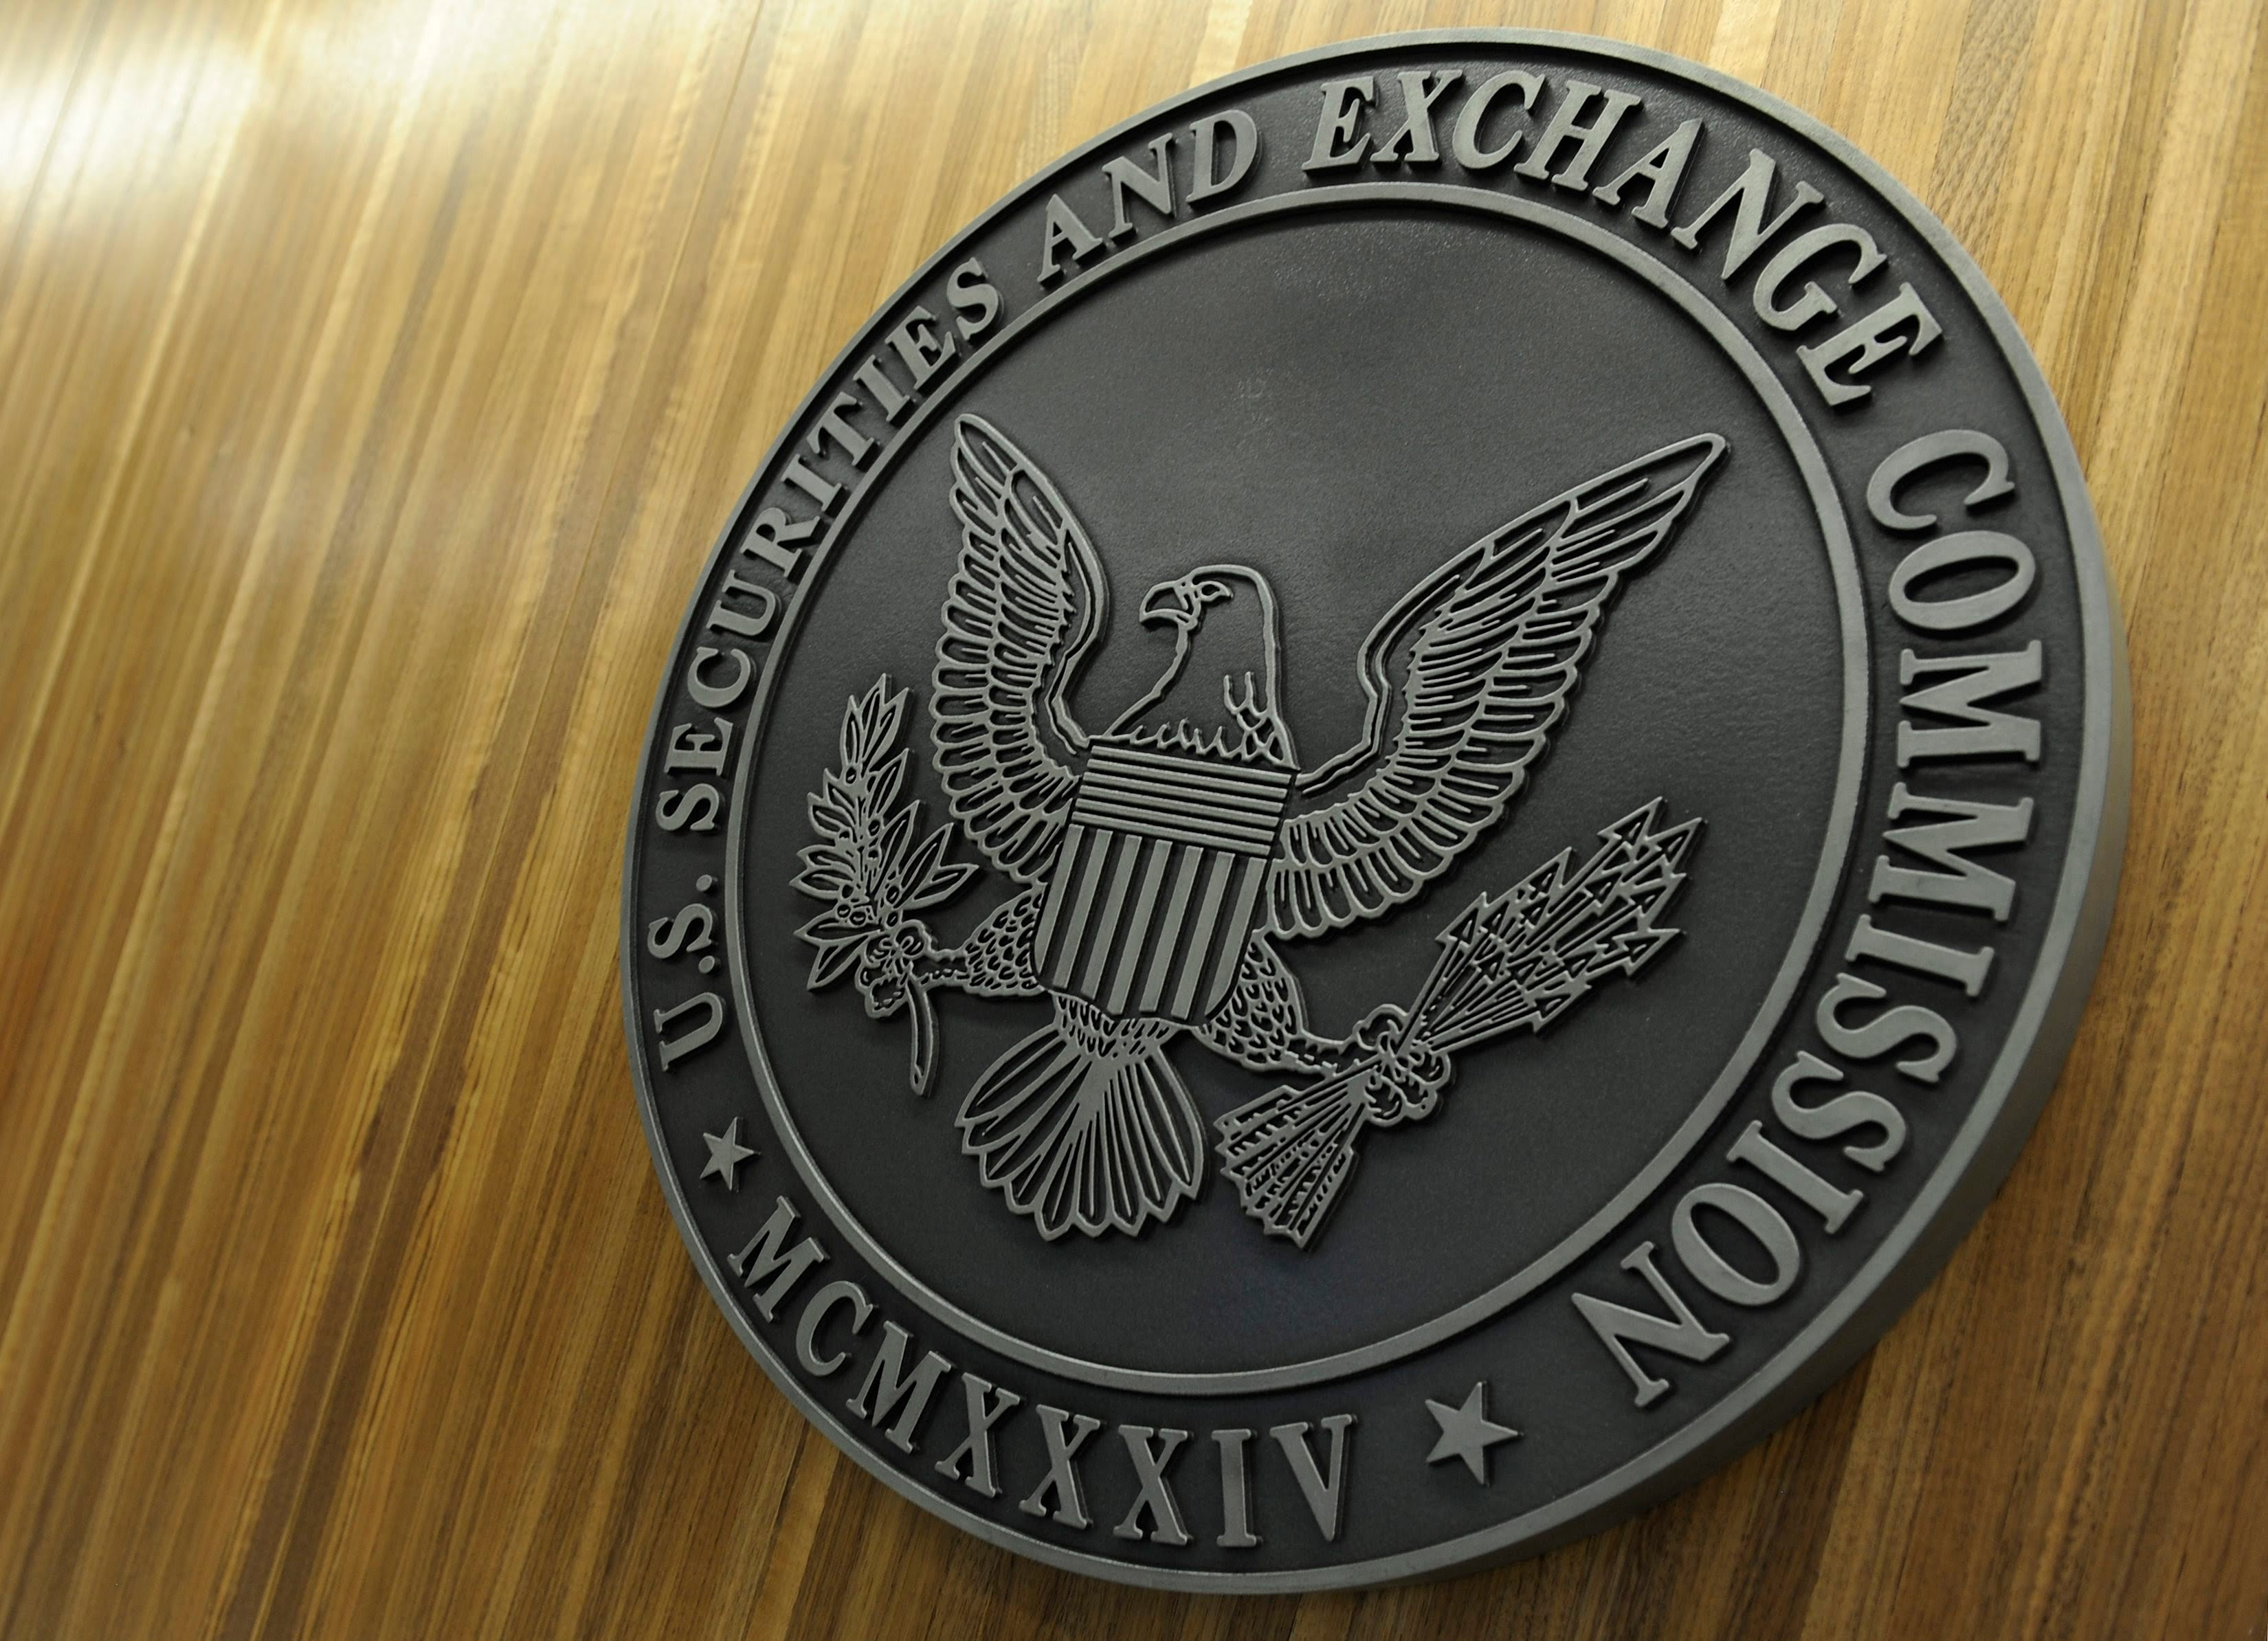 US Security and Exchange Commission